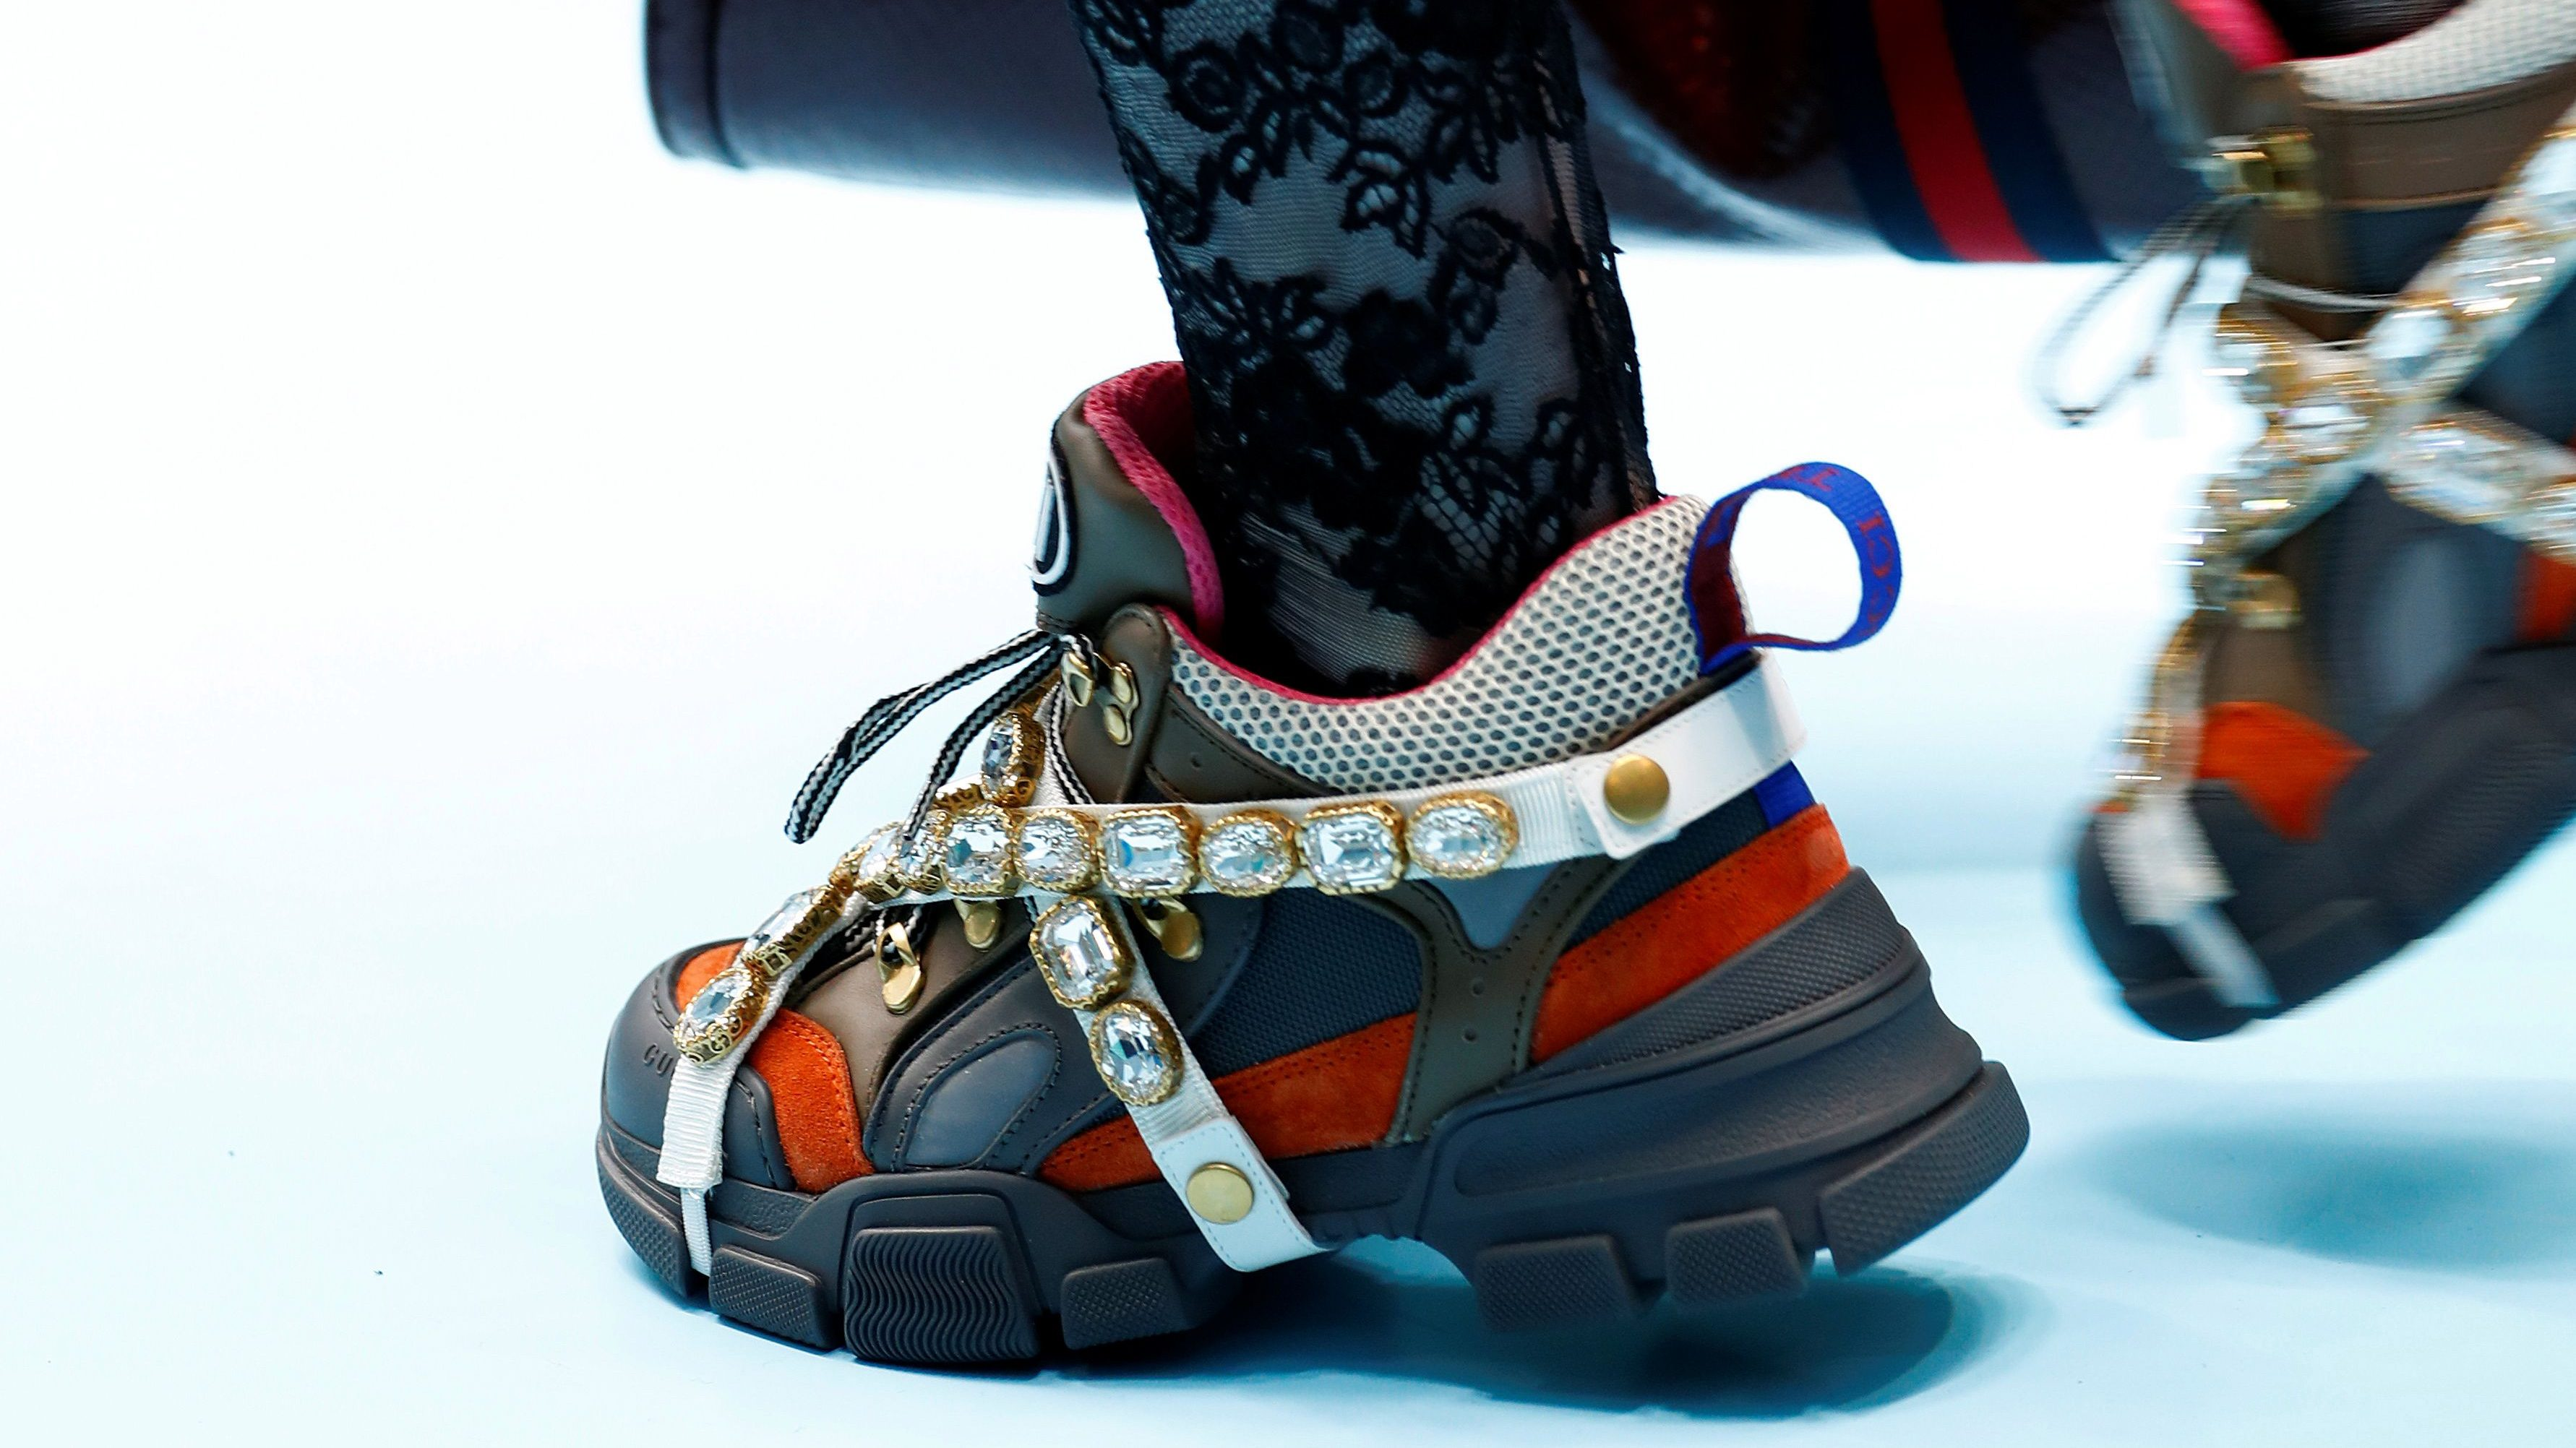 Adidas S Ceo Says Sneakers By Gucci And Versace Are